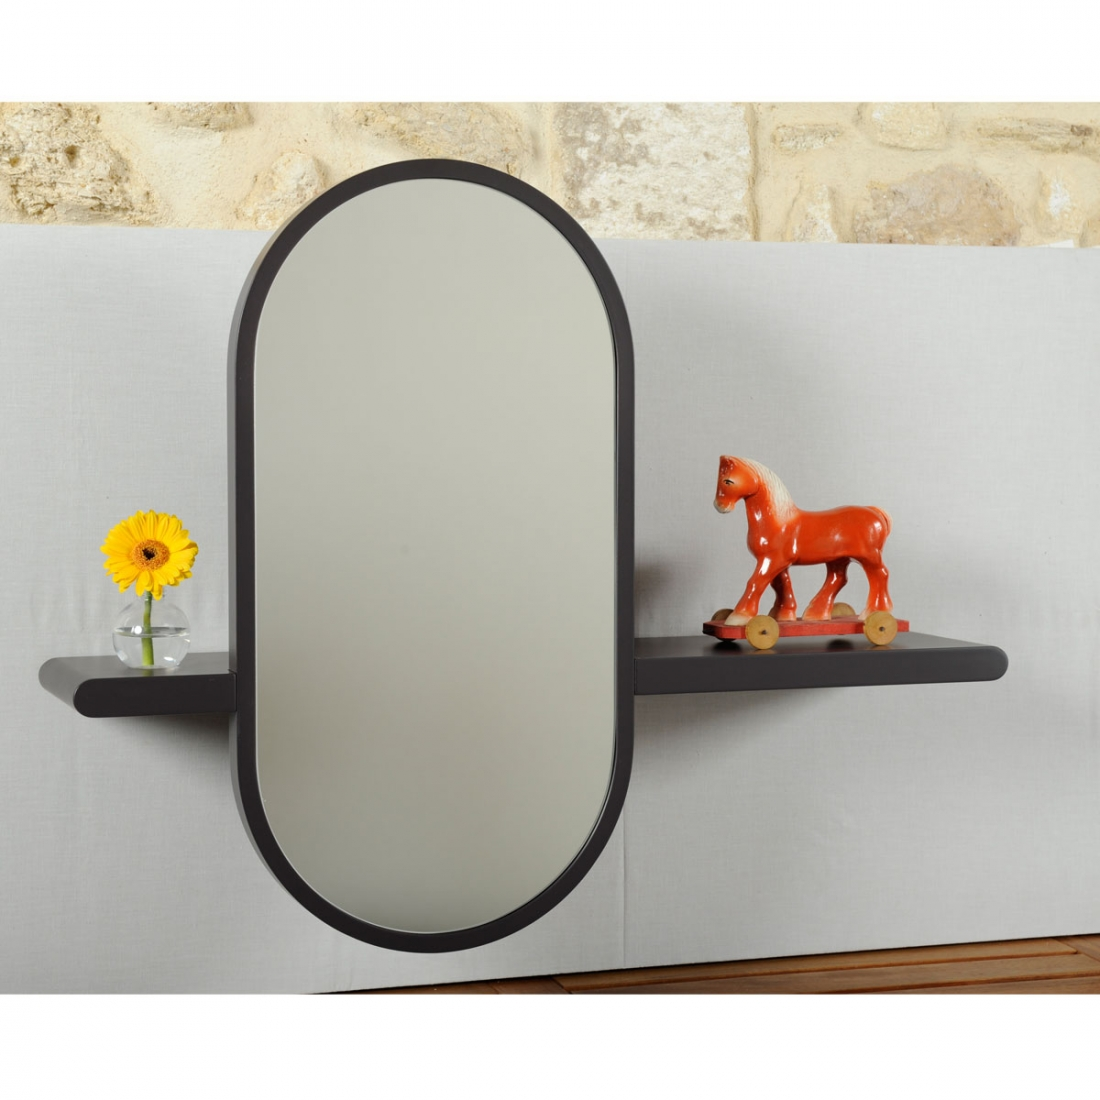 Tablette miroir design mirette vertical oxyo for Miroir vertical mural design